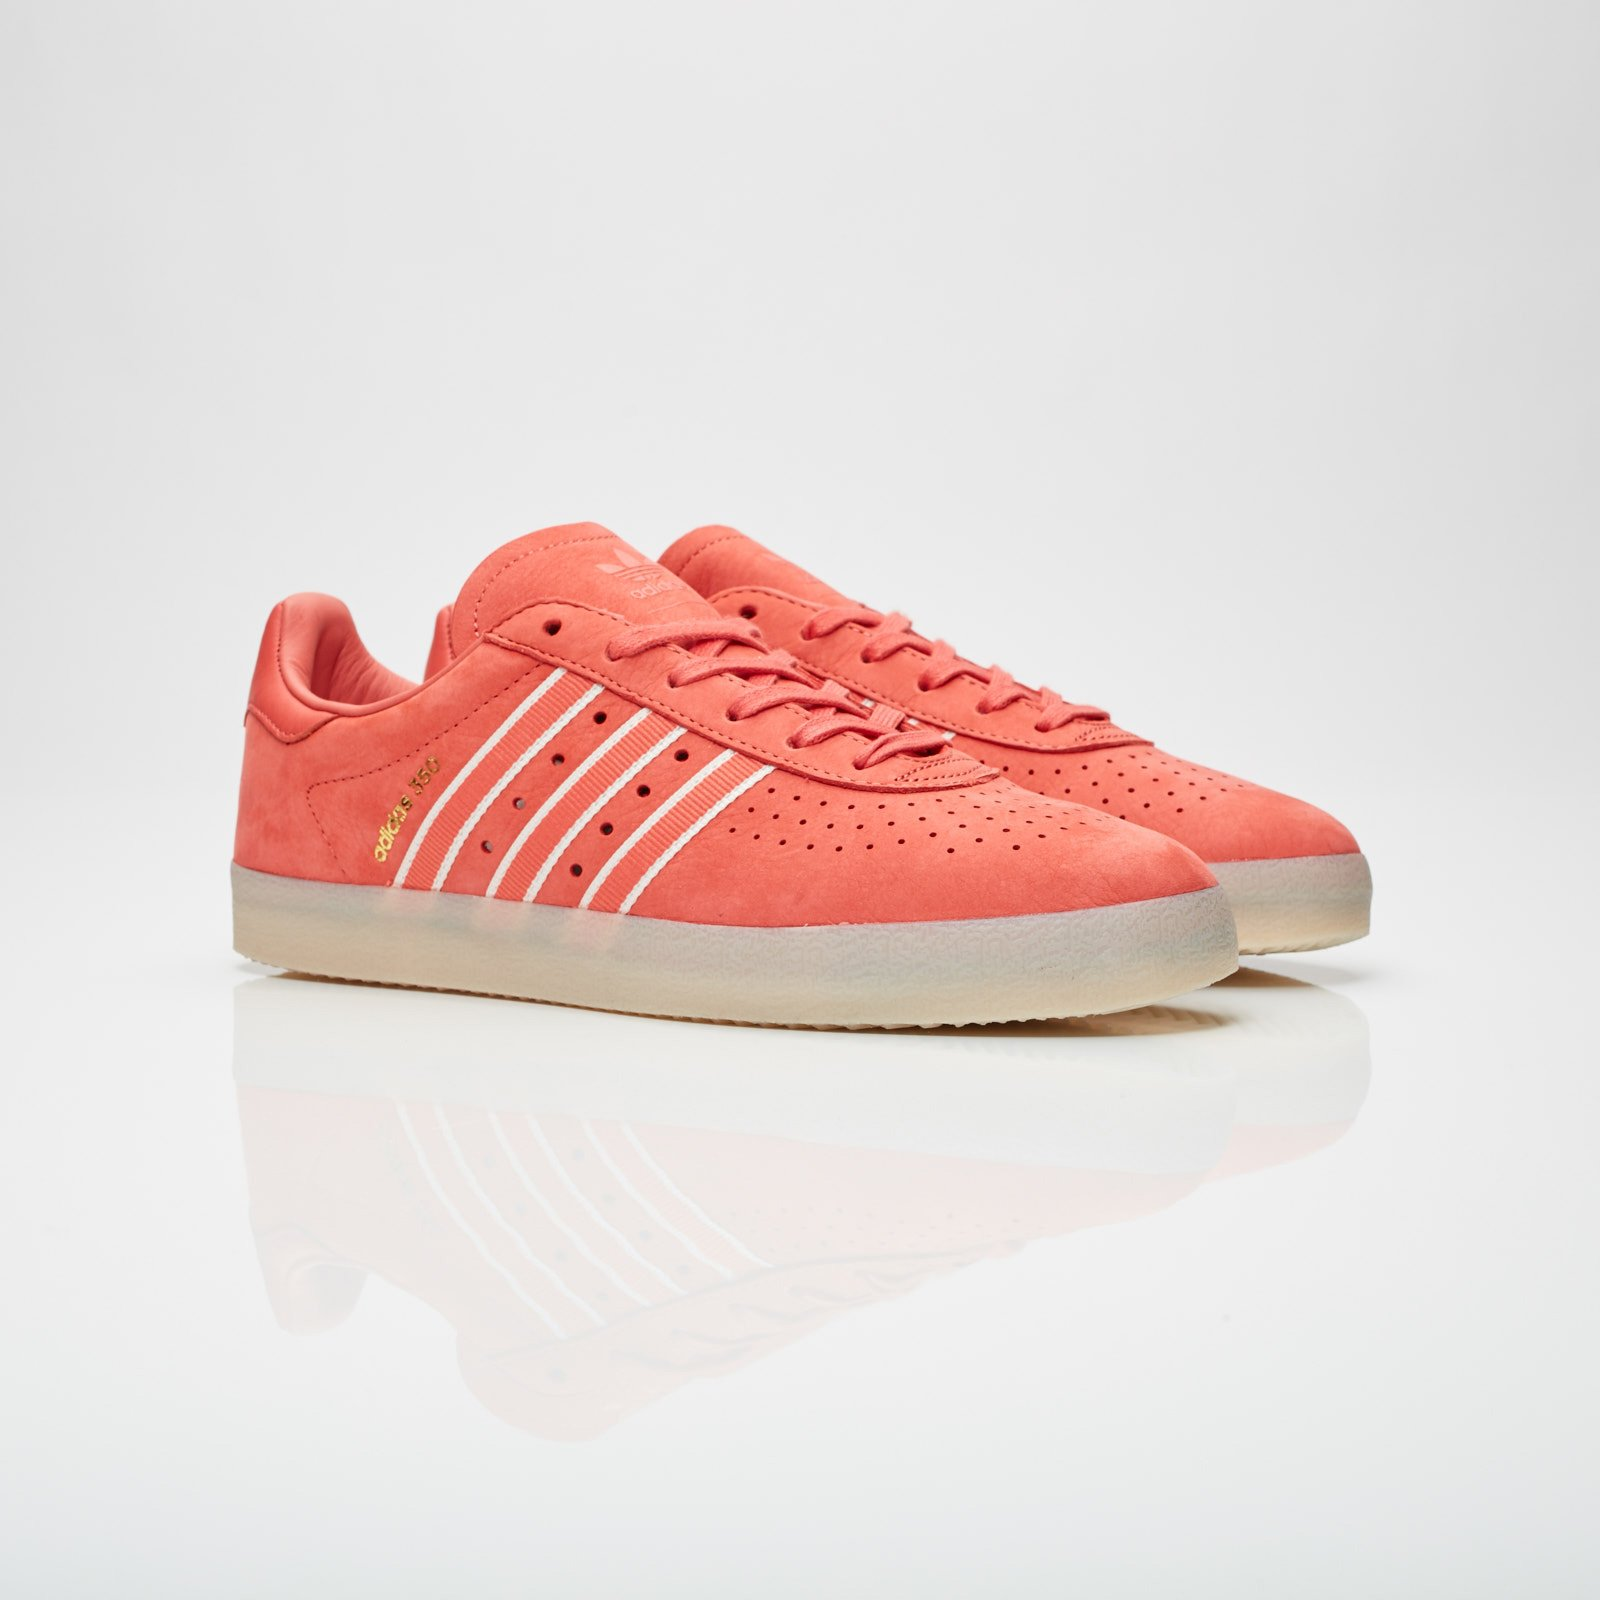 outlet store c5f0f 41163 adidas 350 x Oyster - Db1975 - Sneakersnstuff | sneakers ...